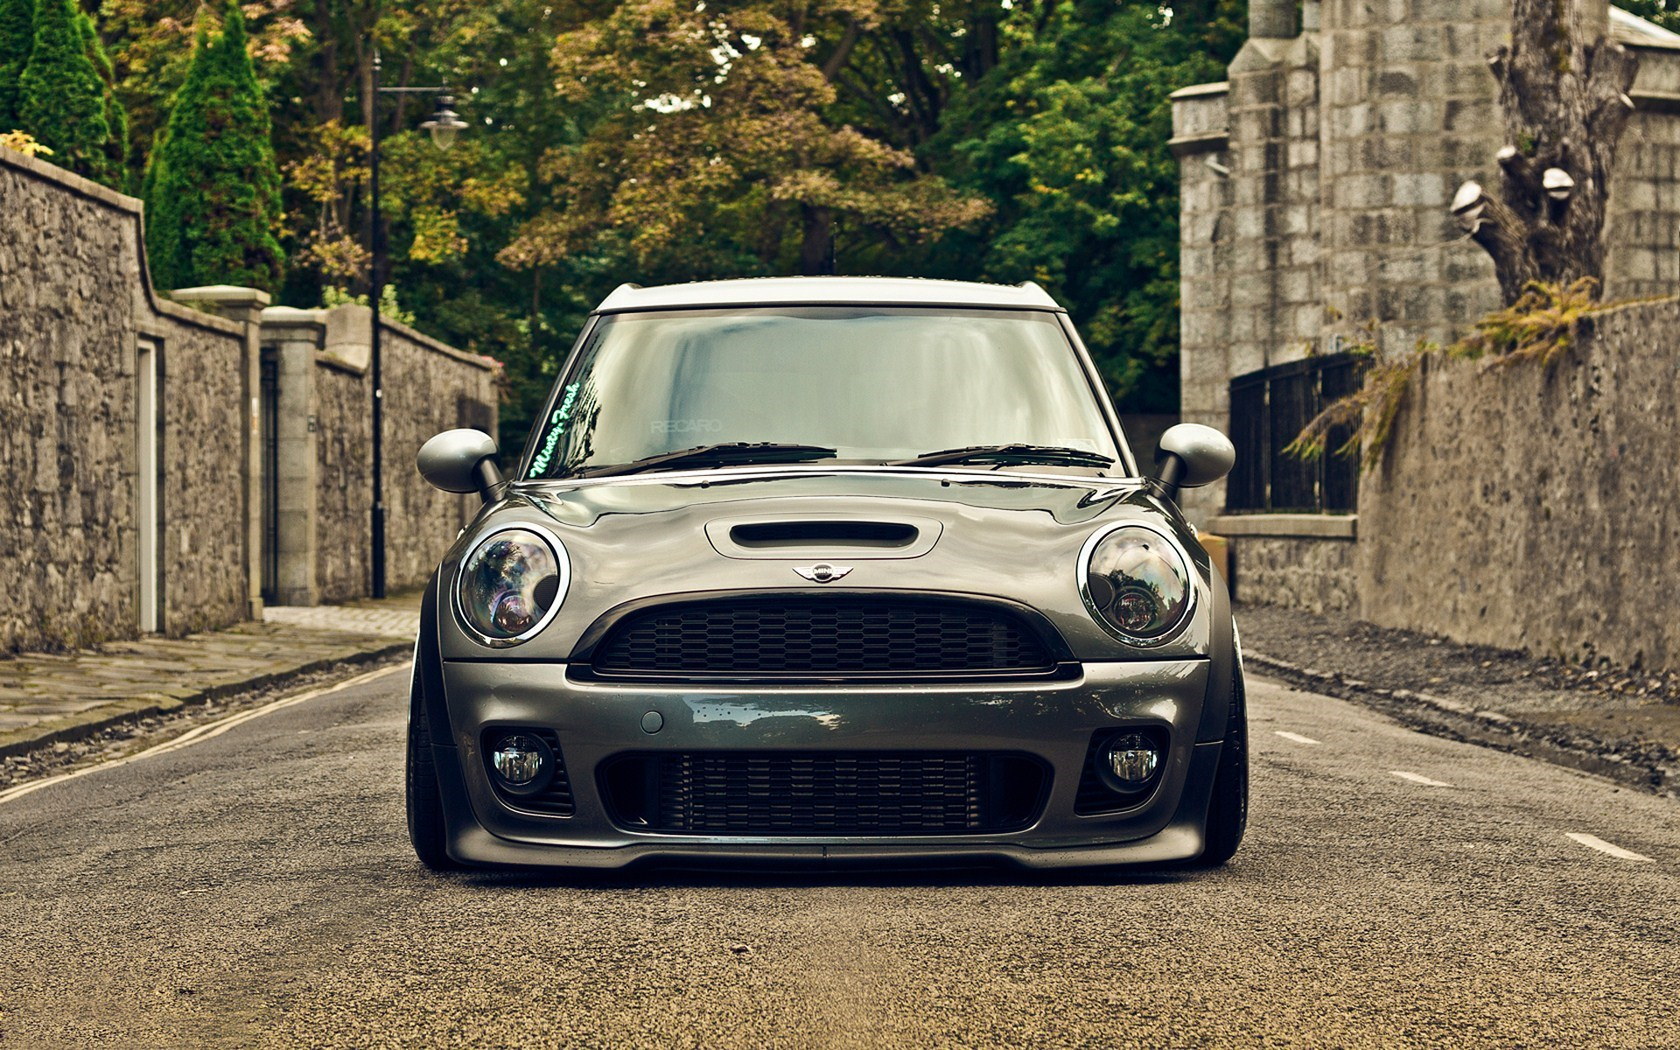 Car Front Mini Cooper Tuning HD Wallpaper